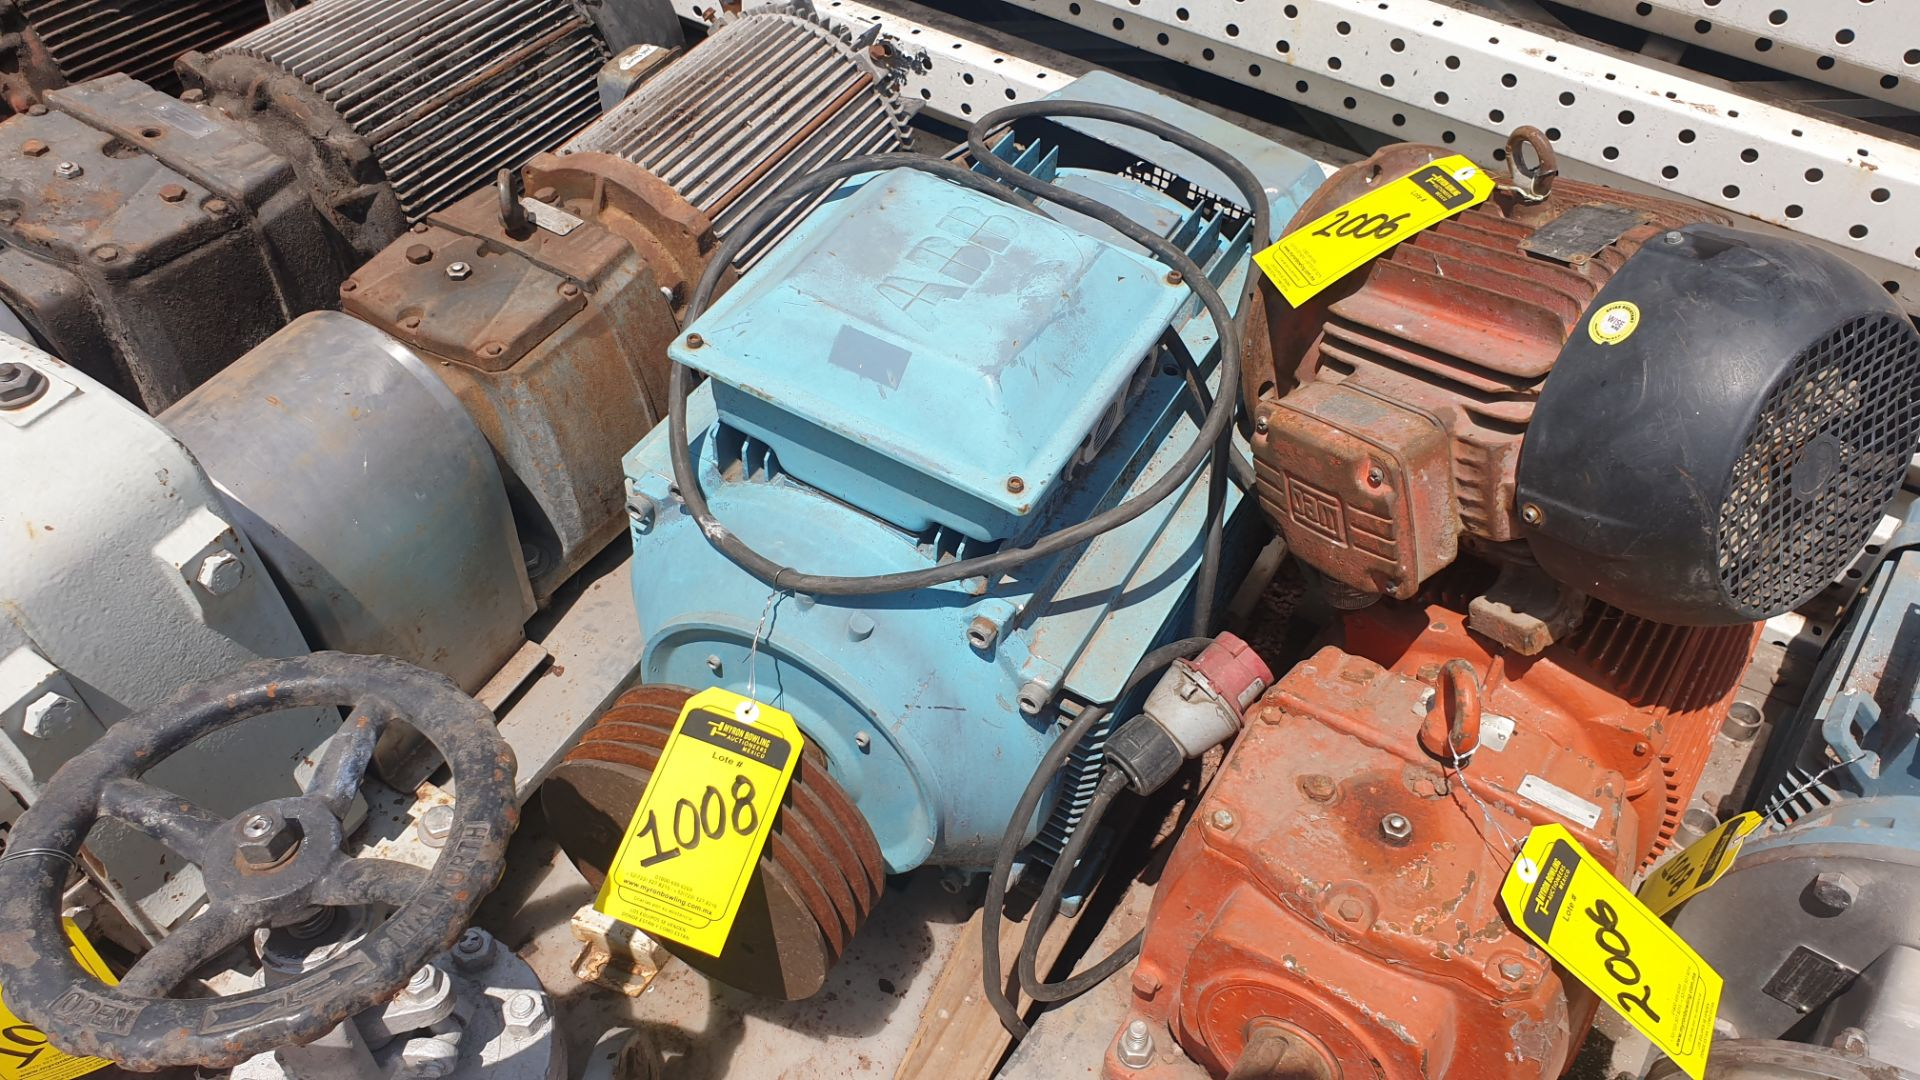 1 ABB motor without plate, 1 ABB motor model M2AA160M2 15KW